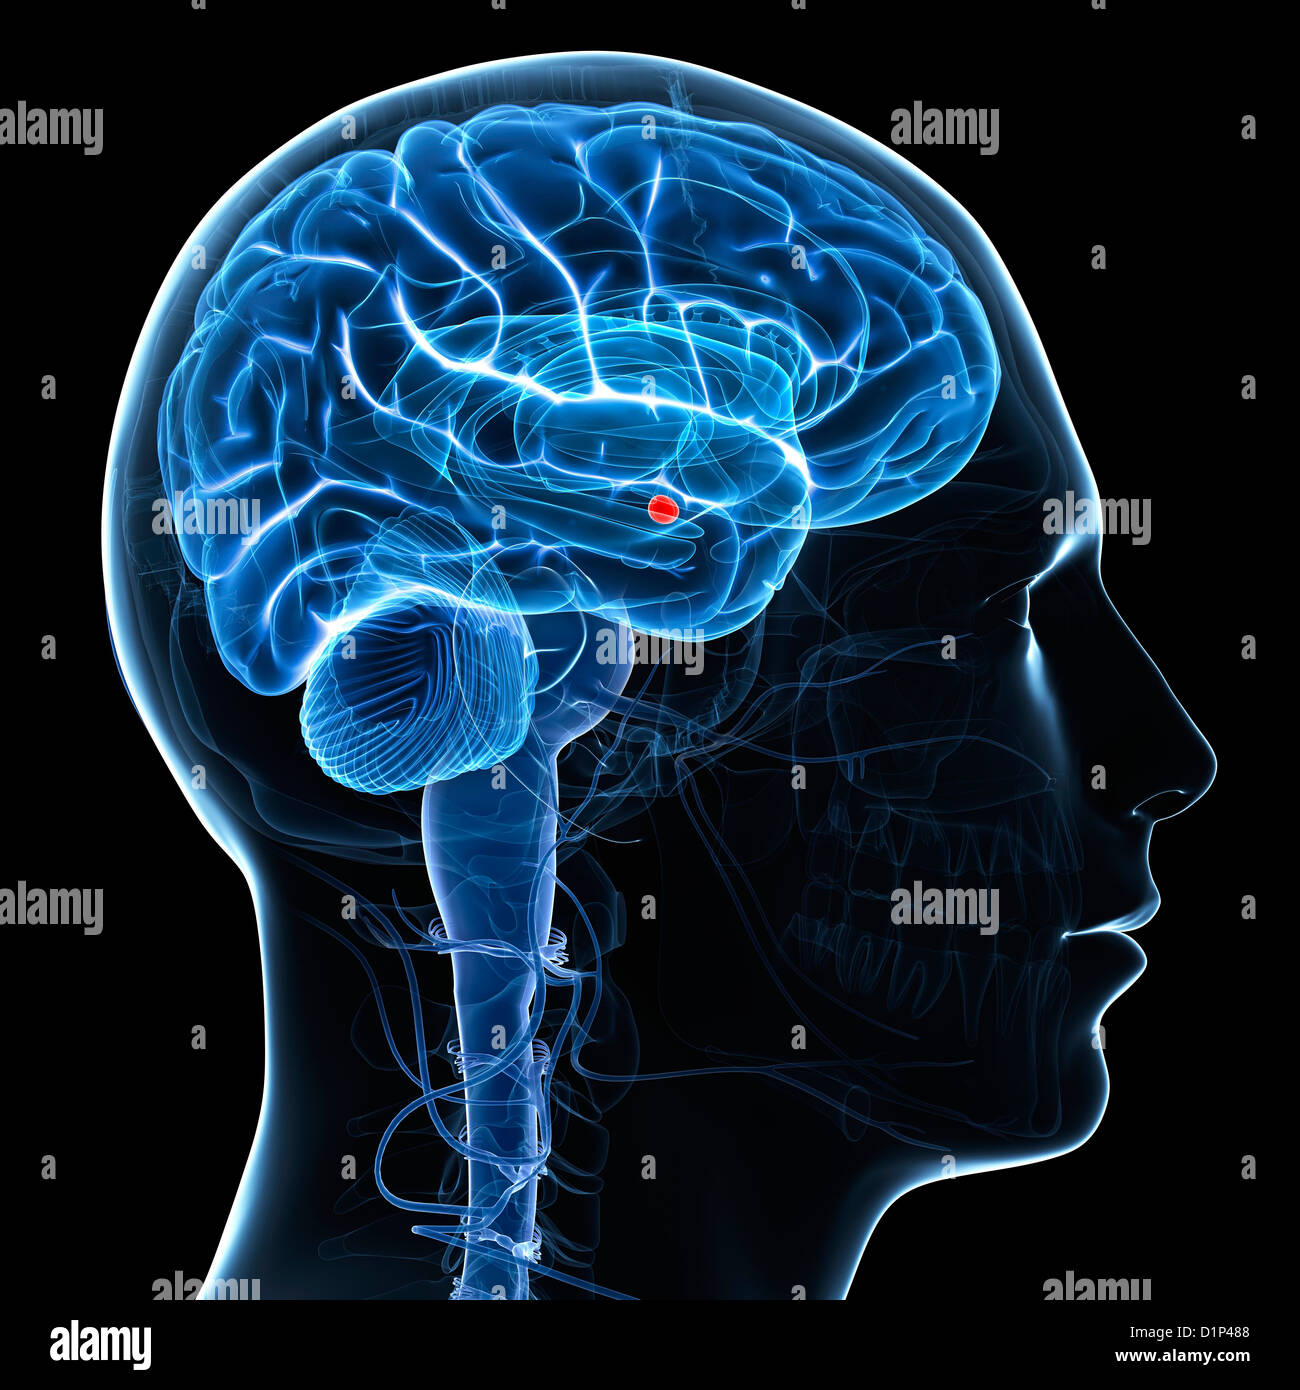 Amygdala of the brain, artwork Stock Photo